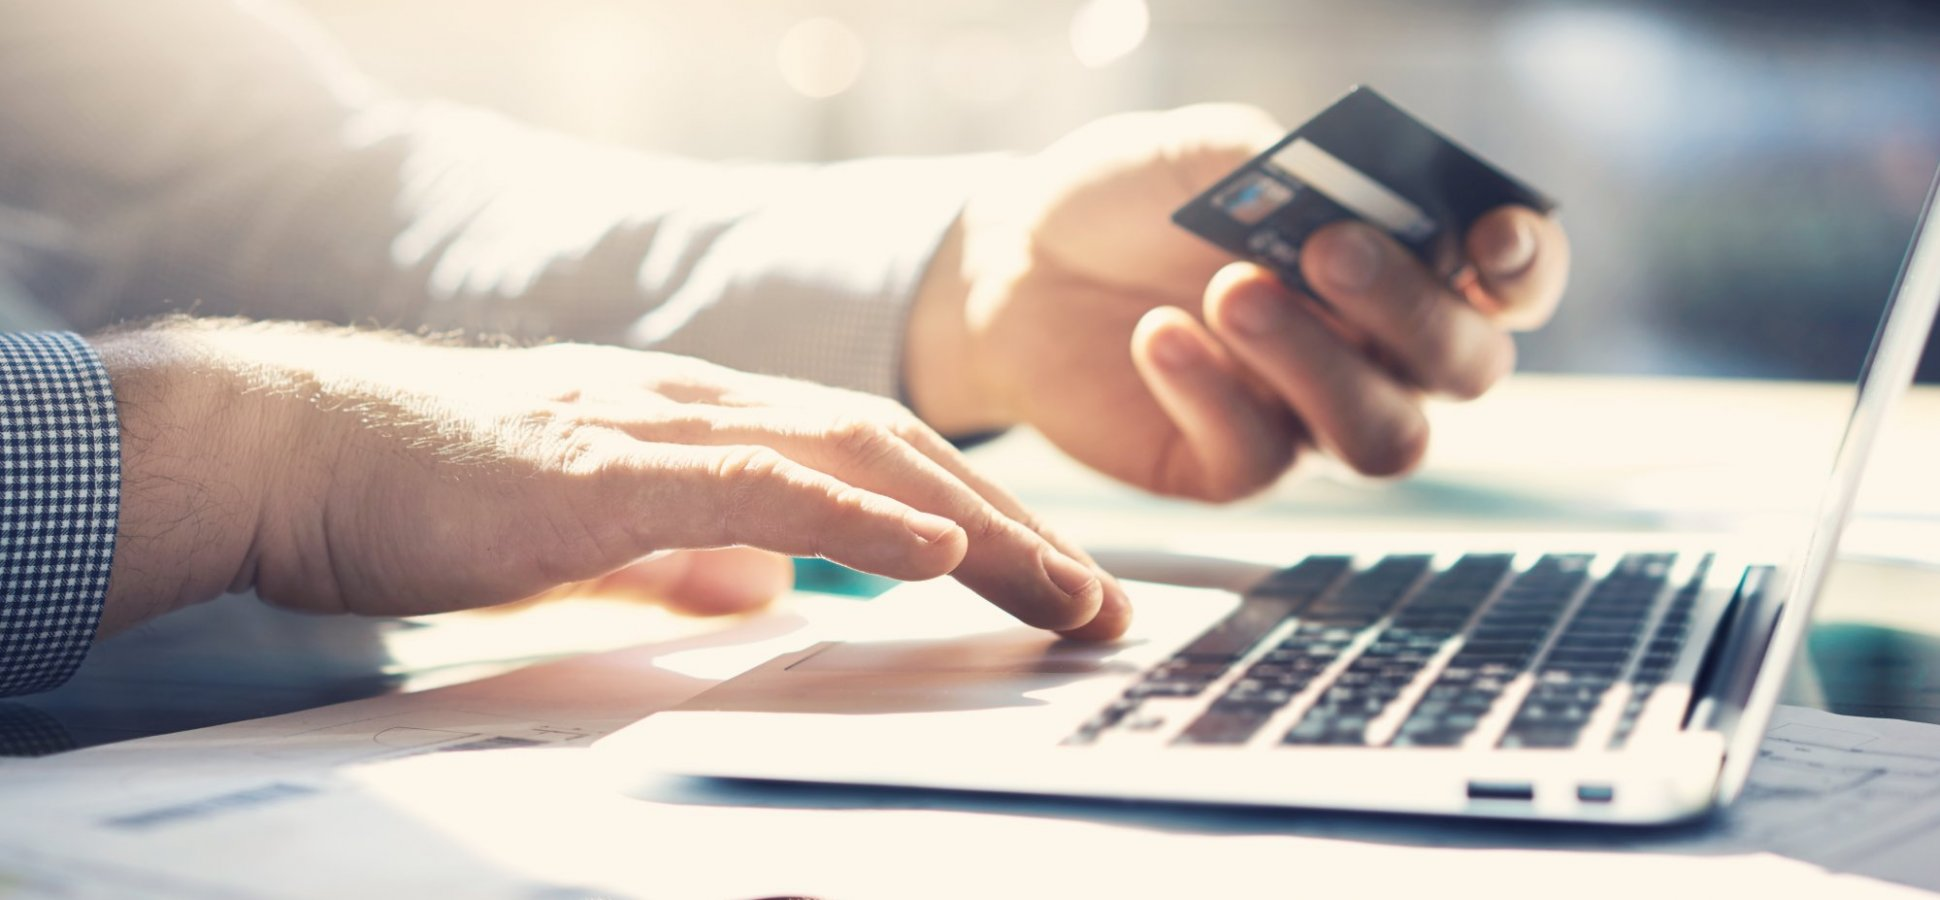 How to Build Customer Loyalty for Your E-Commerce Store